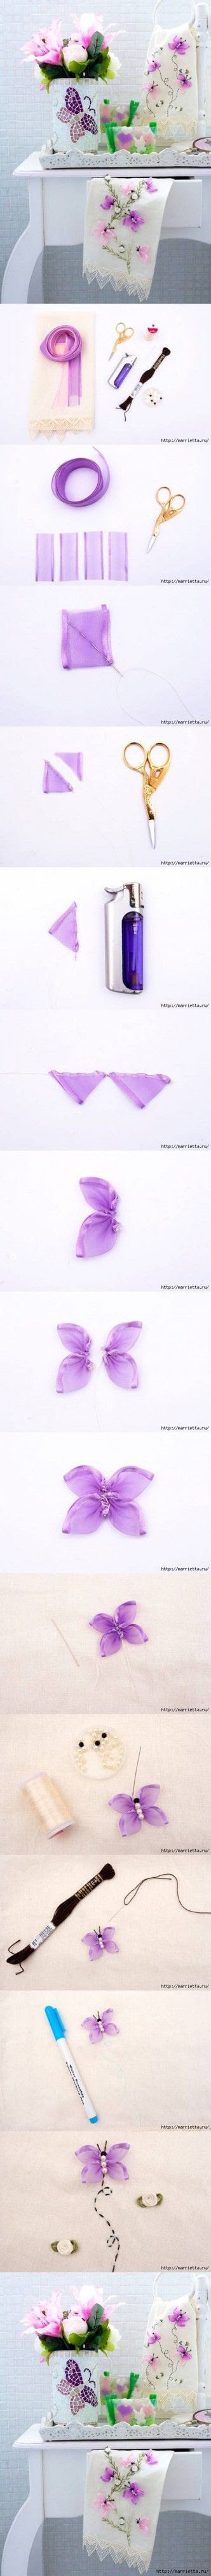 DIY Butterfly Hand Ribbon Embroidery